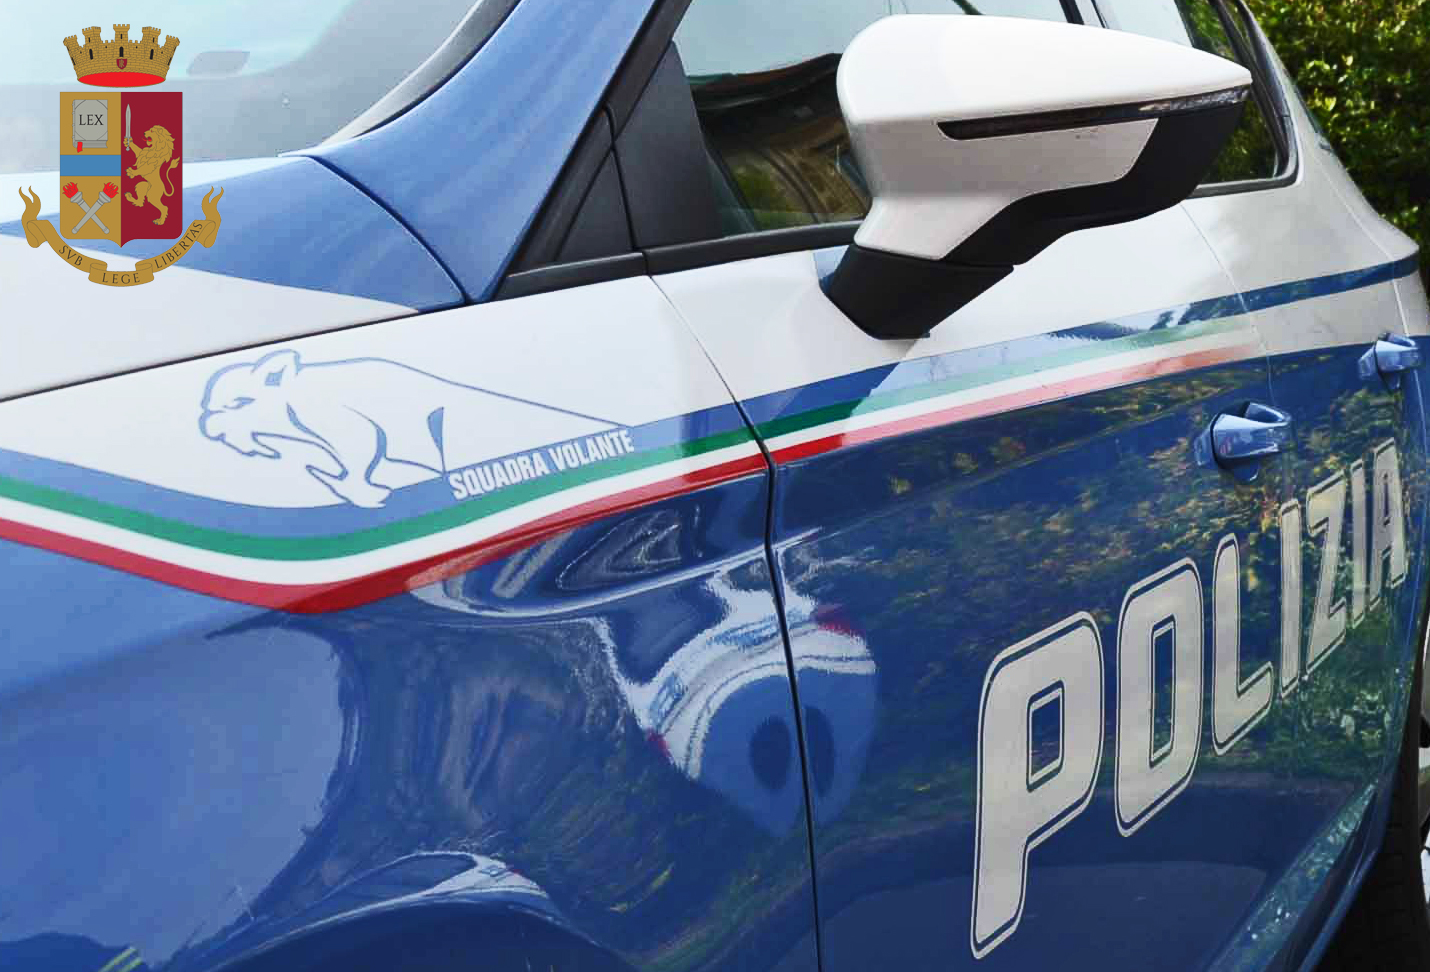 DA' IN ESCANDESCENZE IN PRONTO SOCCORSO: ARRESTATO